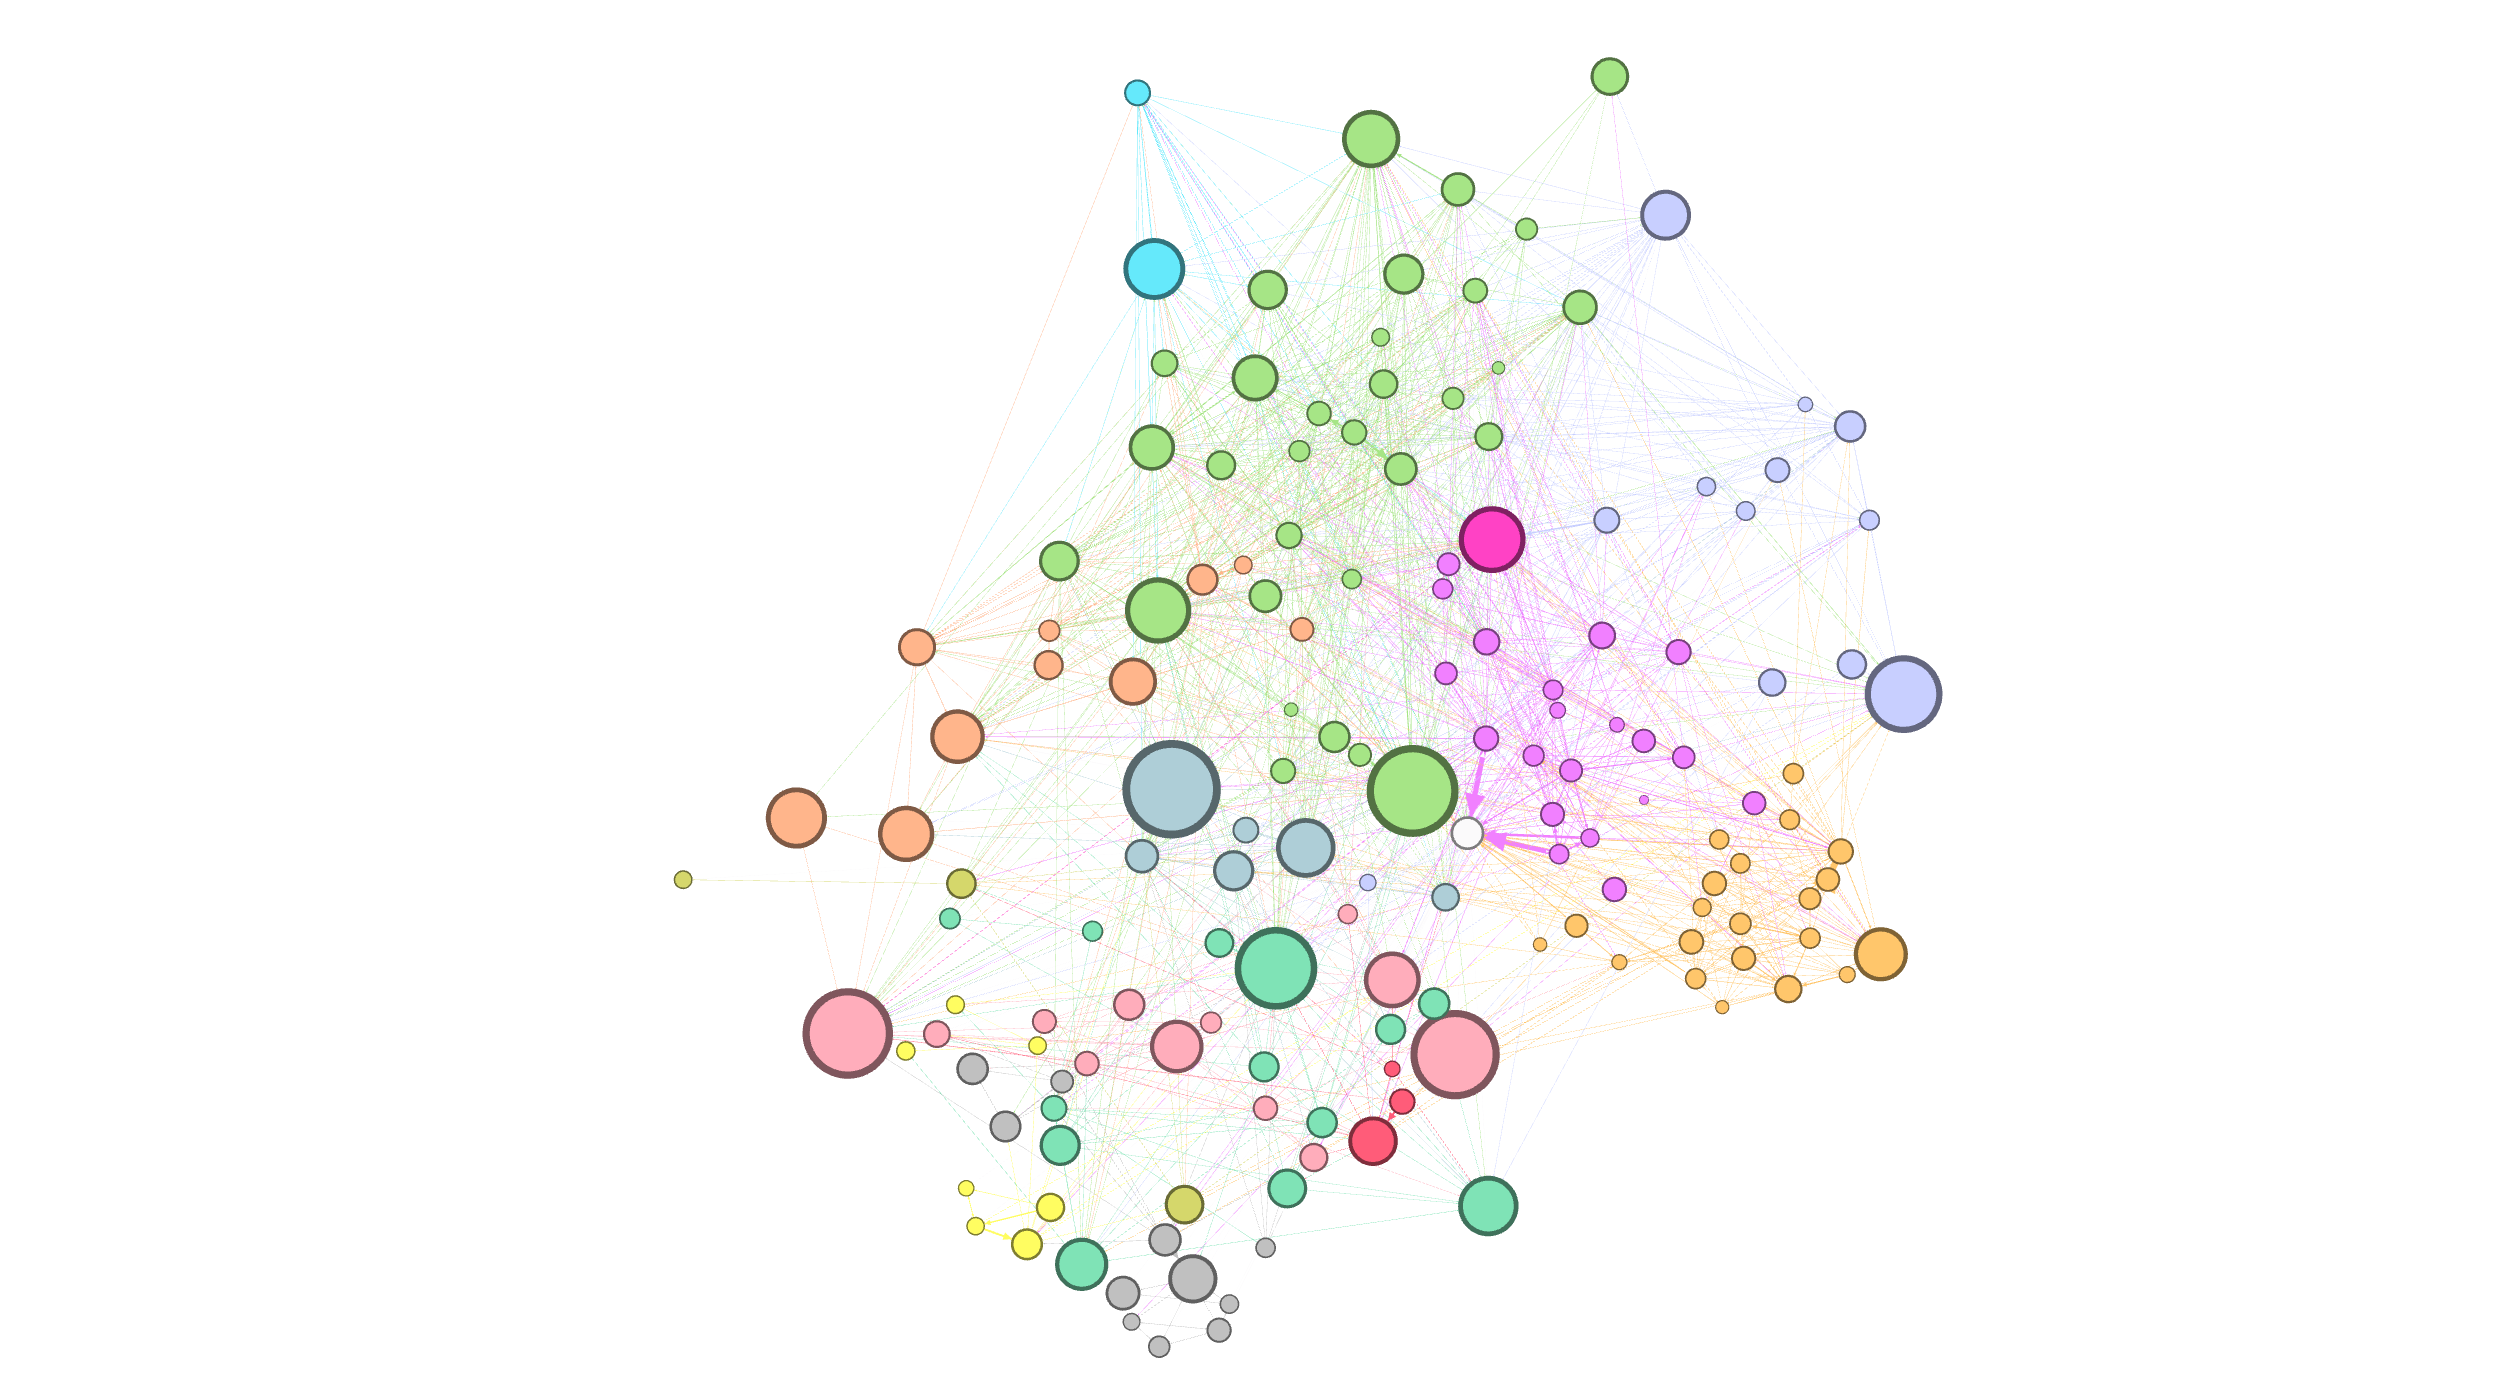 umair-akbar-1*Z1J21FmYblfFmBTBqb8rqQ - A Graph-based approach to community detection in Twitter Networks